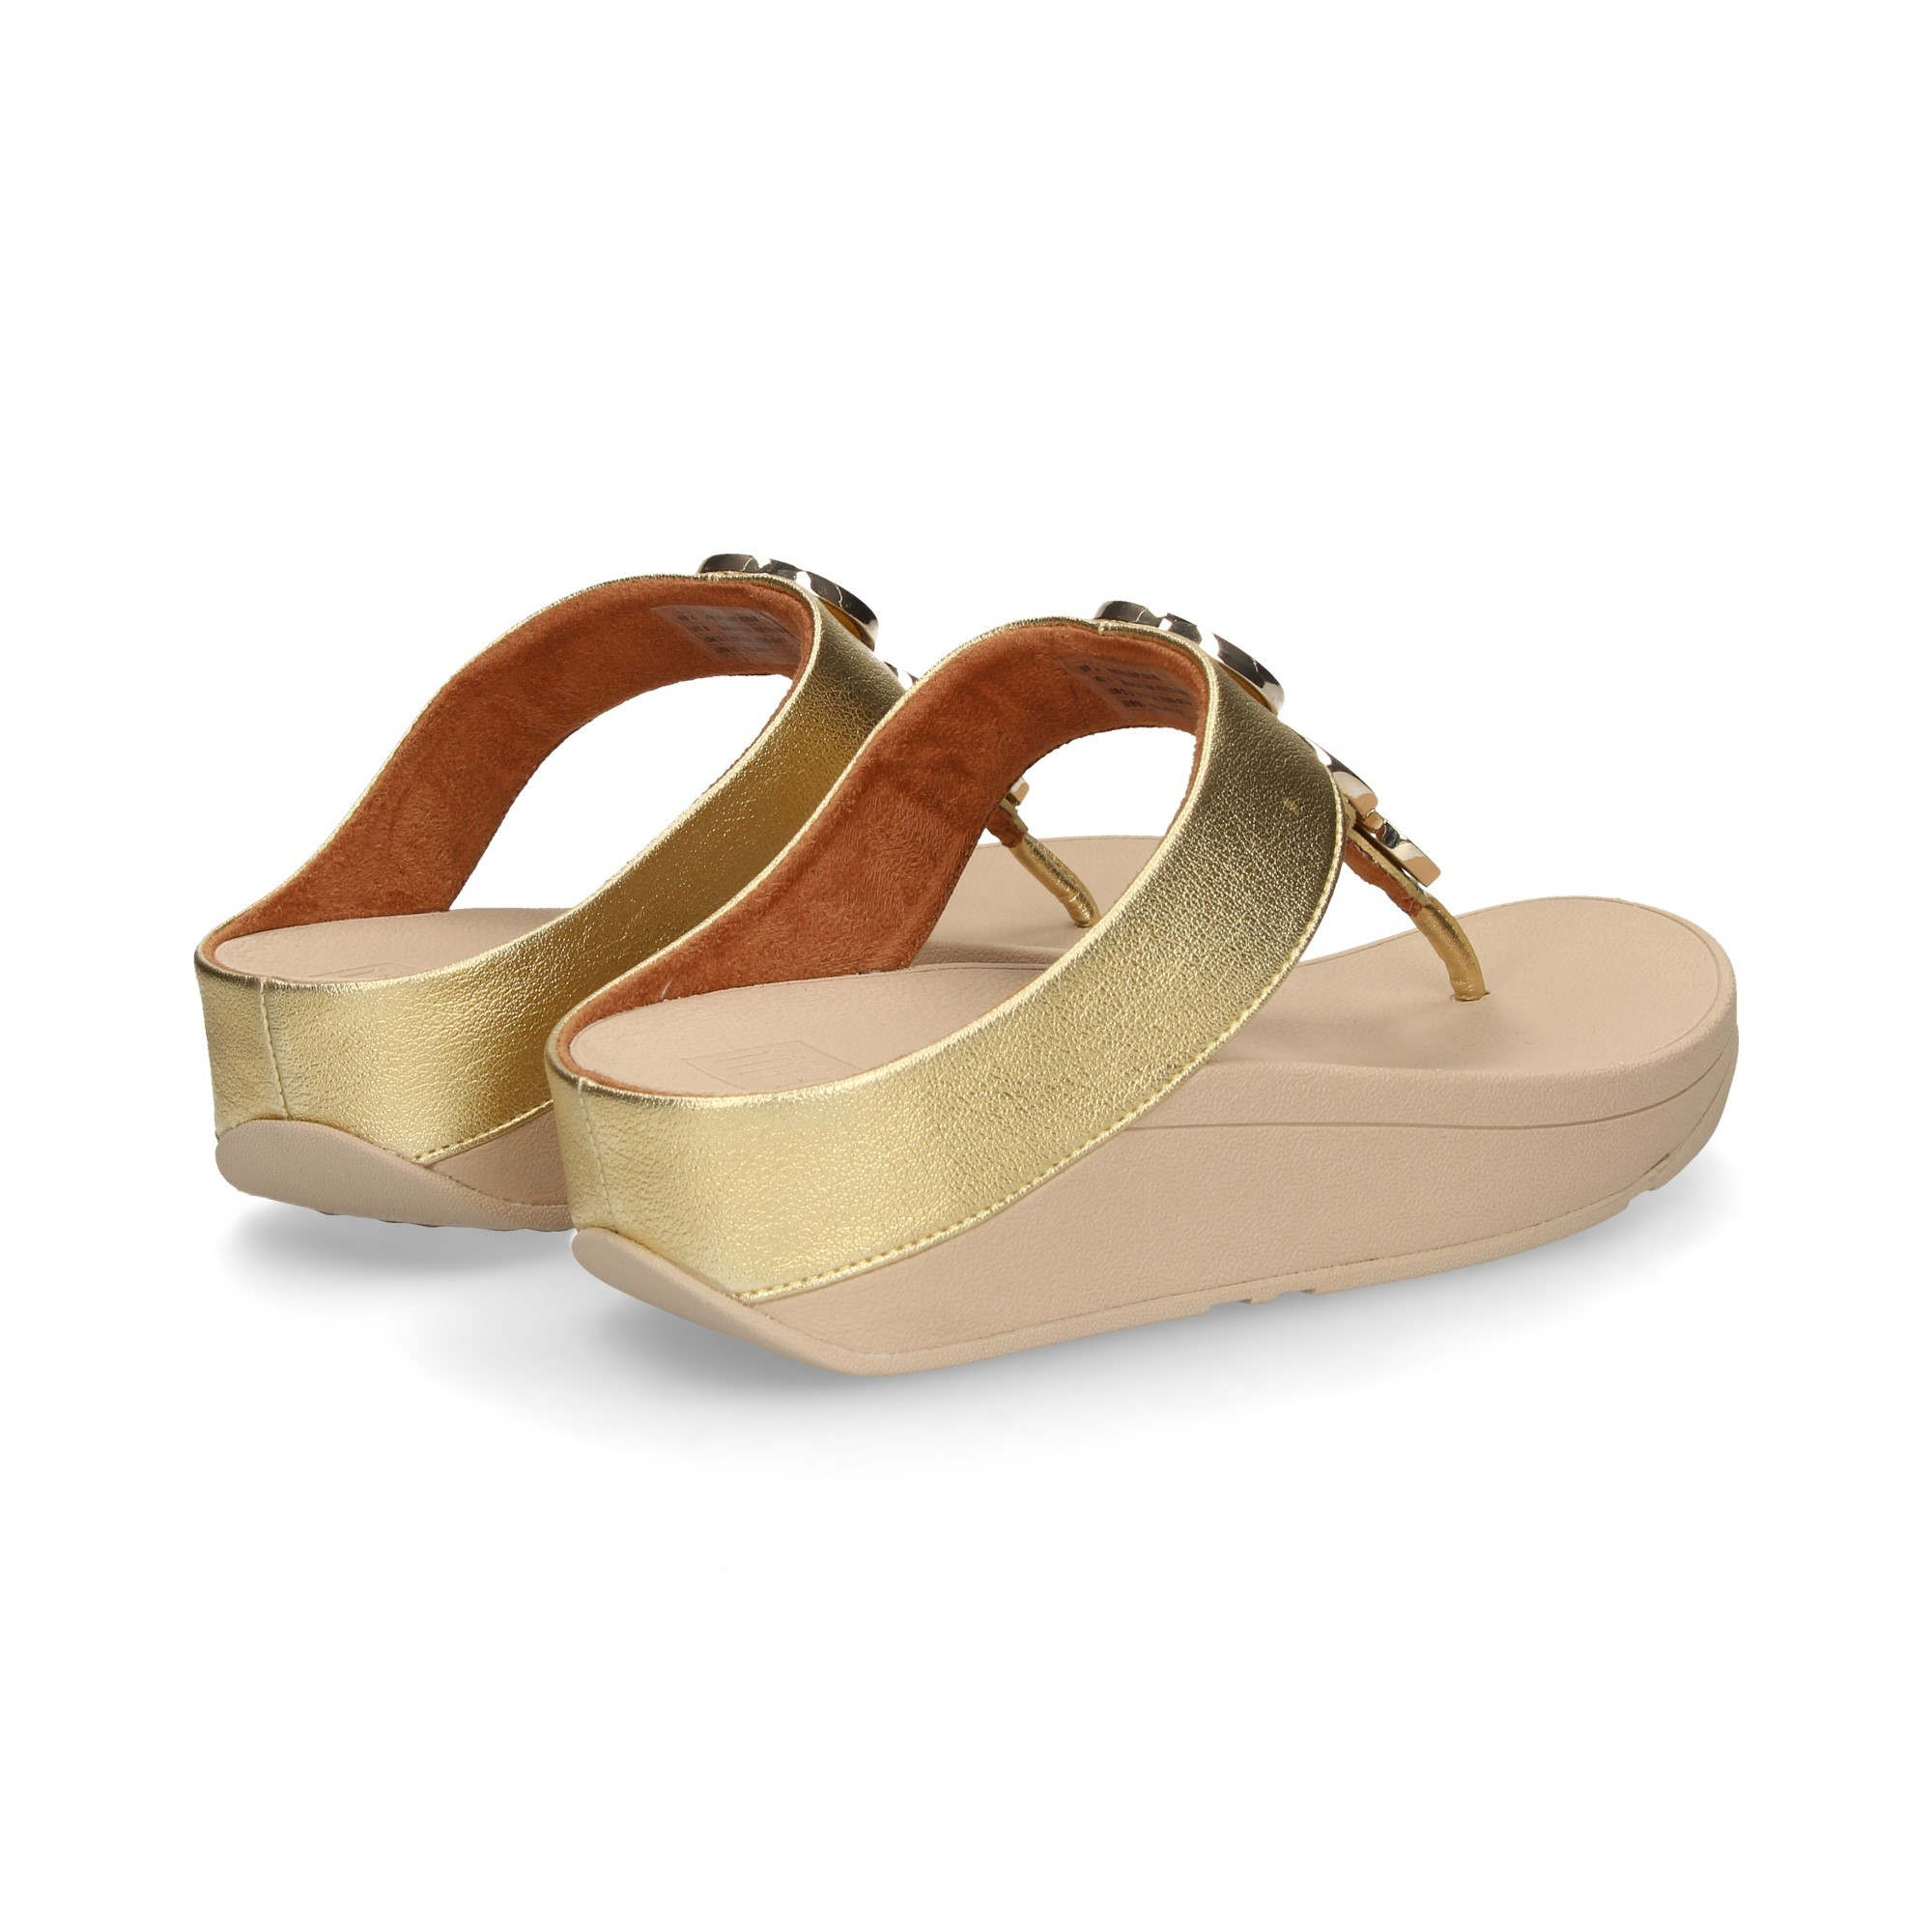 T36 Fitflop Sandalias Mujer Cuña De Gold 667 Ibyvf76gYm